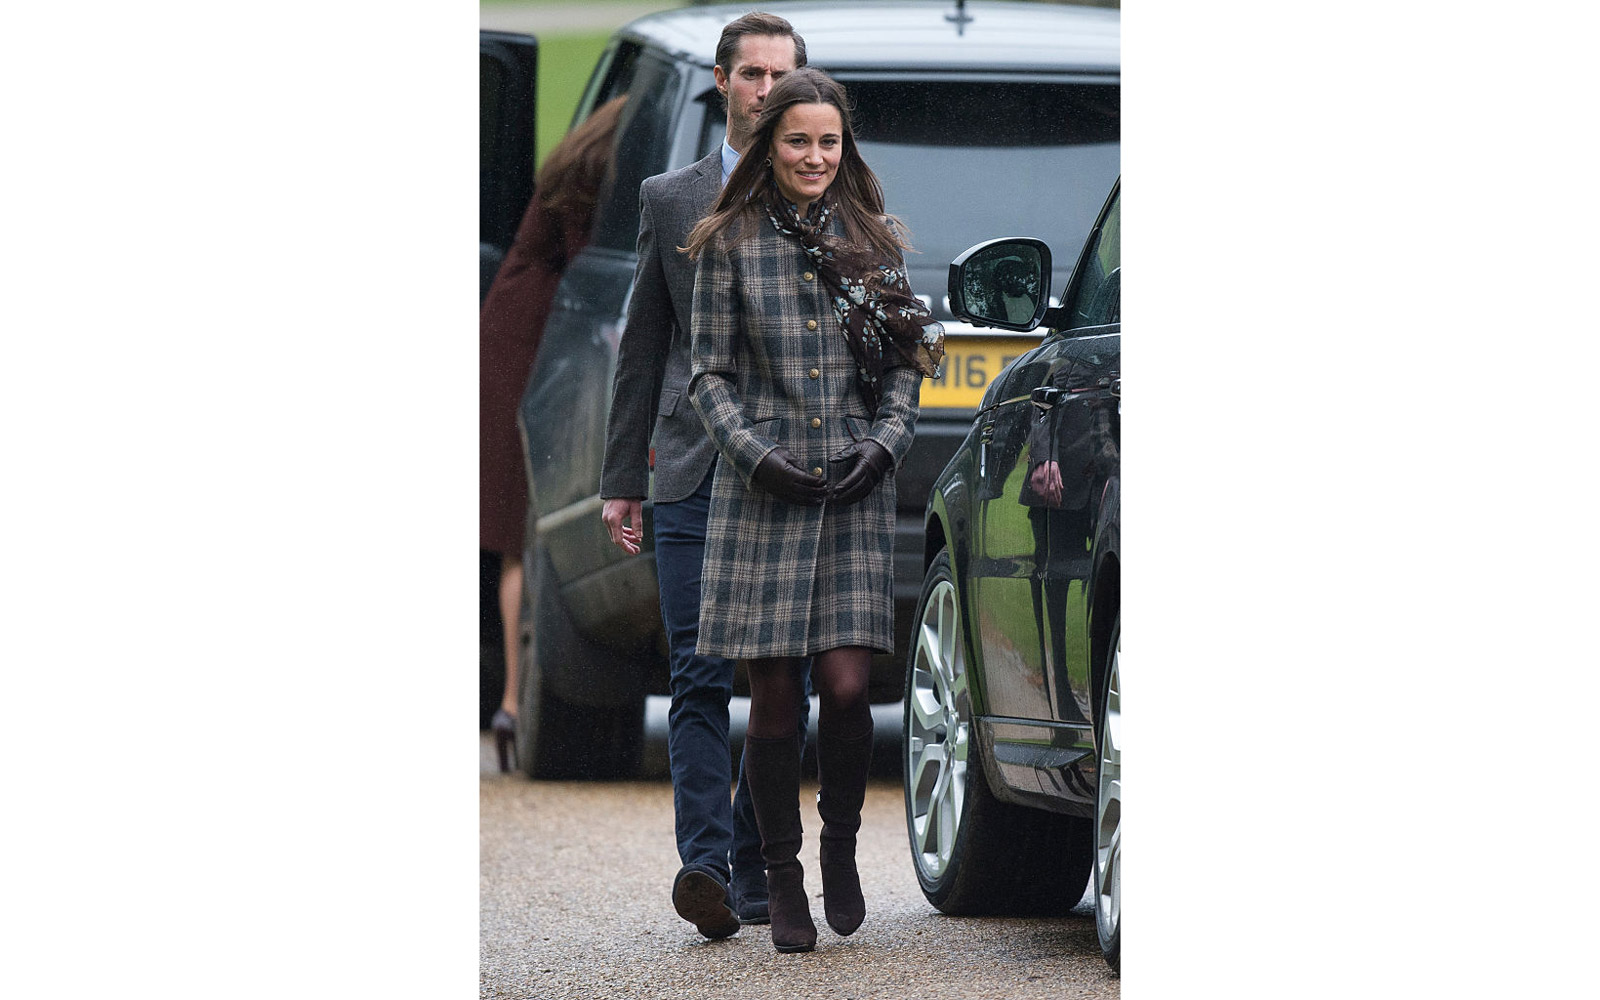 BUCKLEBURY, BERKSHIRE - DECEMBER 25:  Pippa Middleton attends church on Christmas Day on December 25, 2016 in Bucklebury, Berkshire.  (Photo by Samir Hussein/Samir Hussein/WireImage)